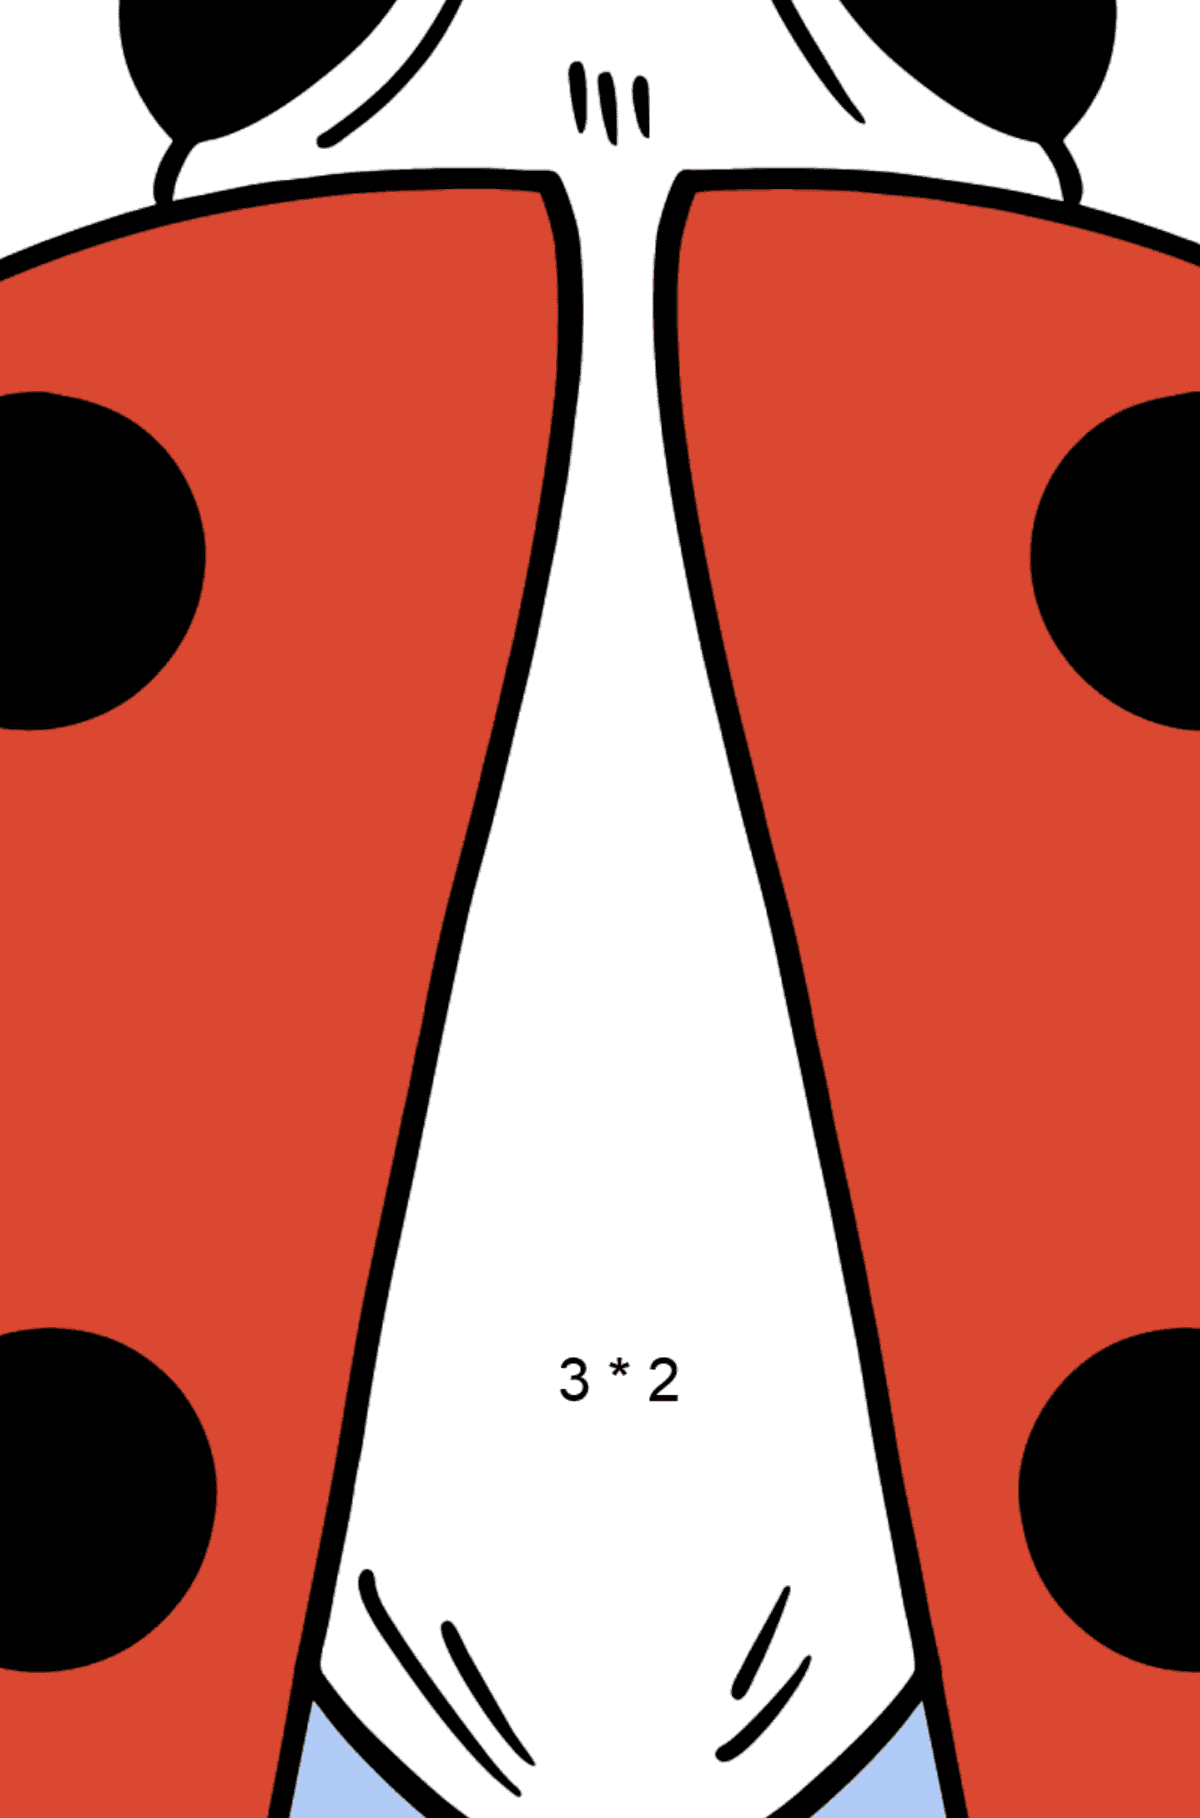 Ladybug coloring page - Math Coloring - Multiplication for Kids